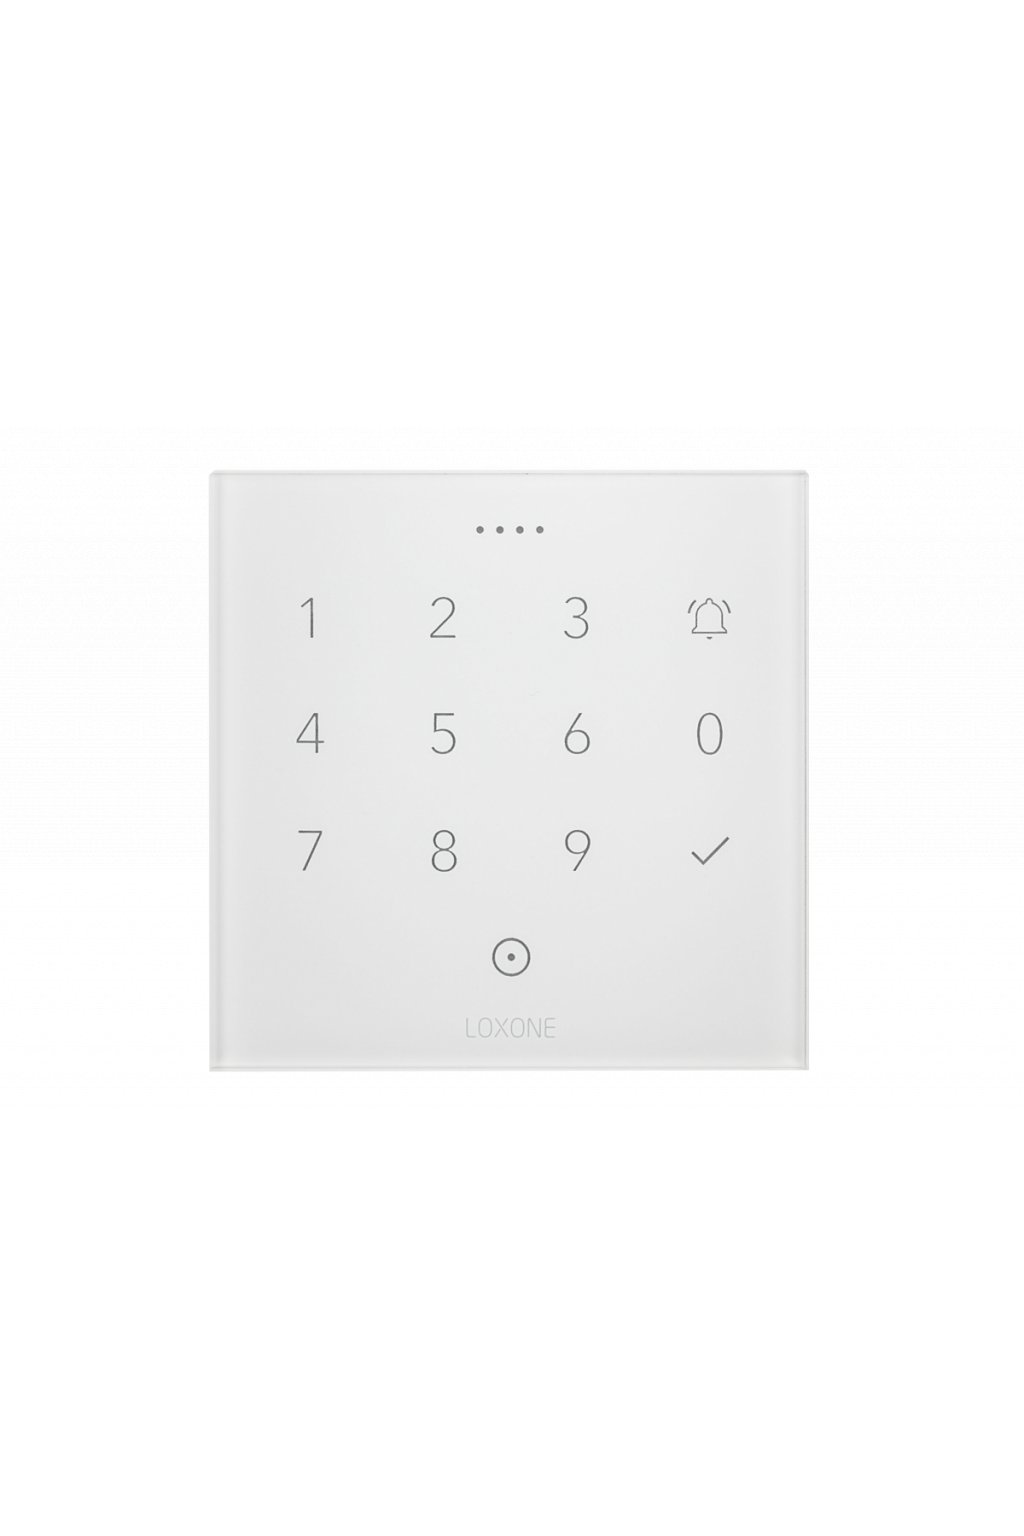 pp nfc code touch@2x